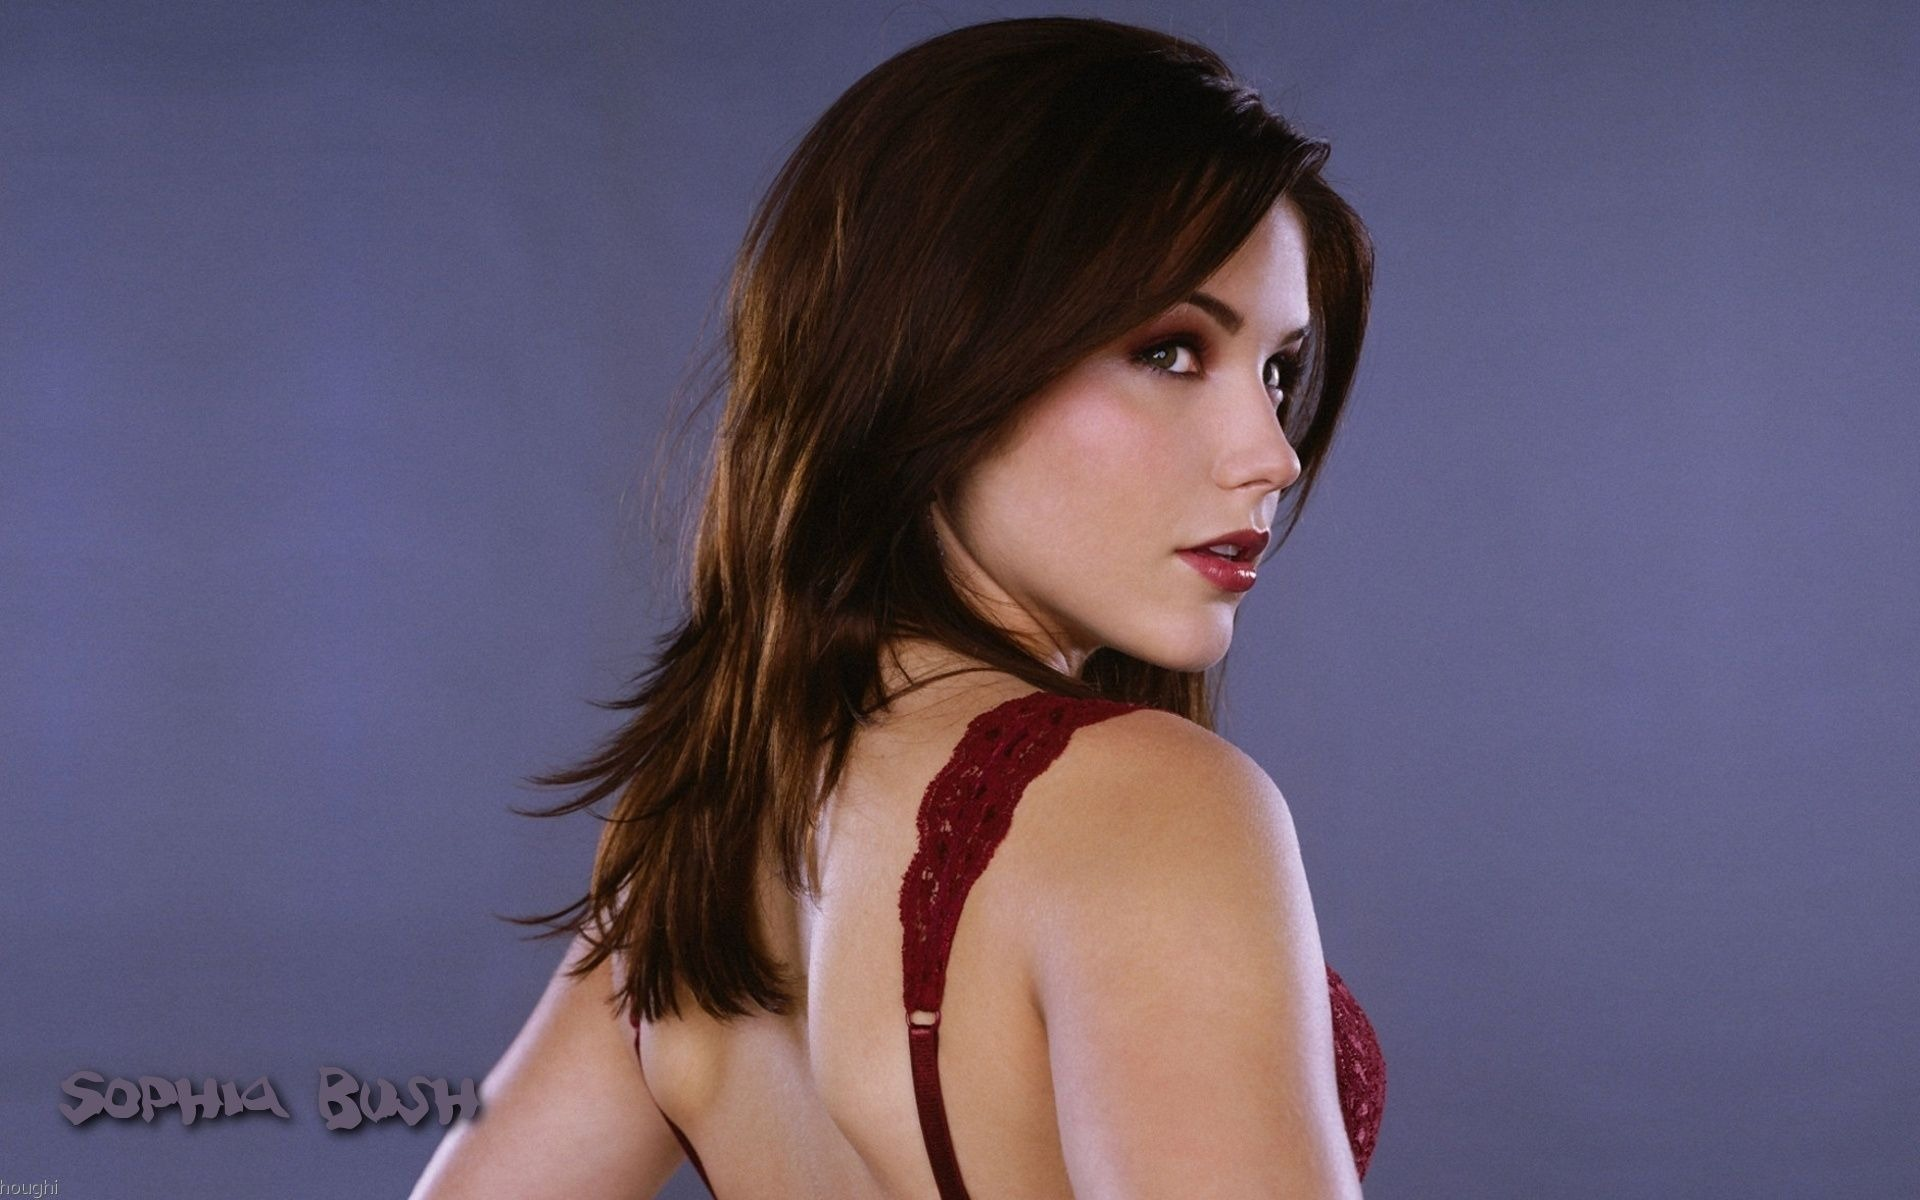 Sophia Bush #007 - 1920x1200 Wallpapers Pictures Photos Images